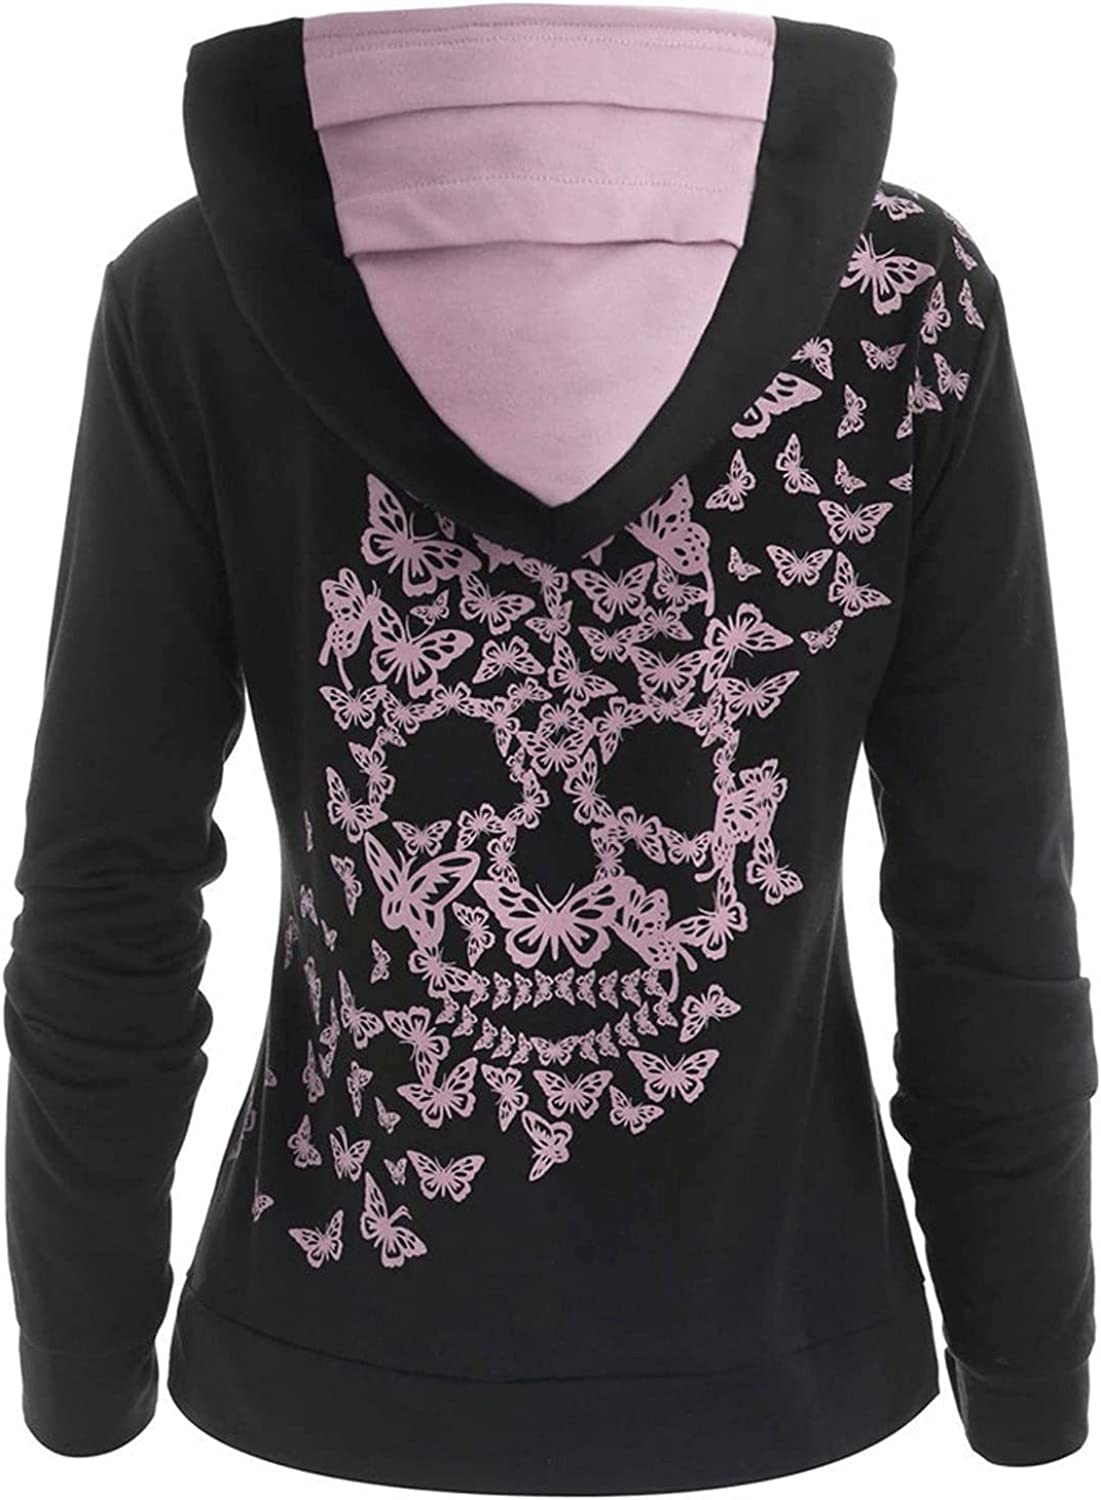 Women Casual Sweater Tops Tie Long Max 82% OFF Sleeve Printed Dye Fees free Drawstring